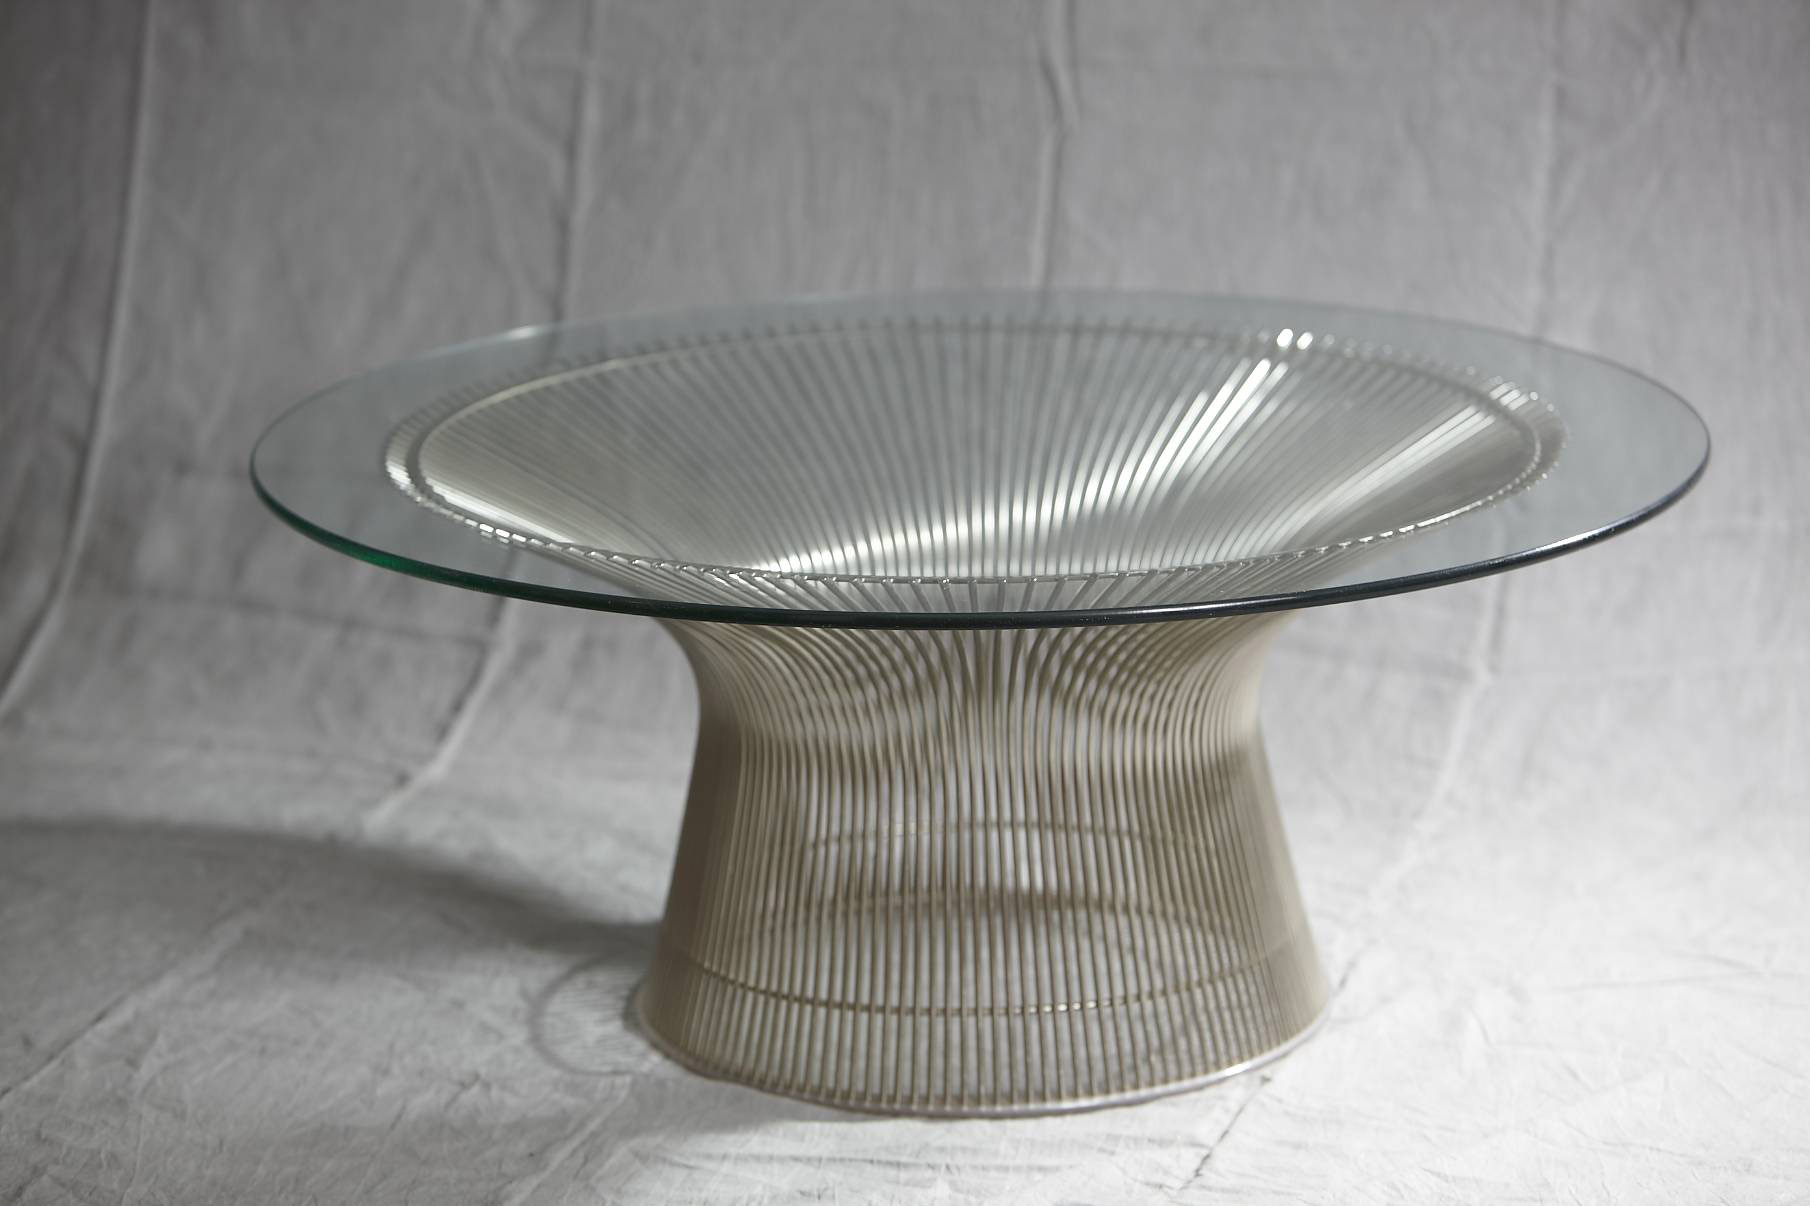 Chrome plated coffee table for Knoll JENS BUETTNER DESIGN ANTIQUES